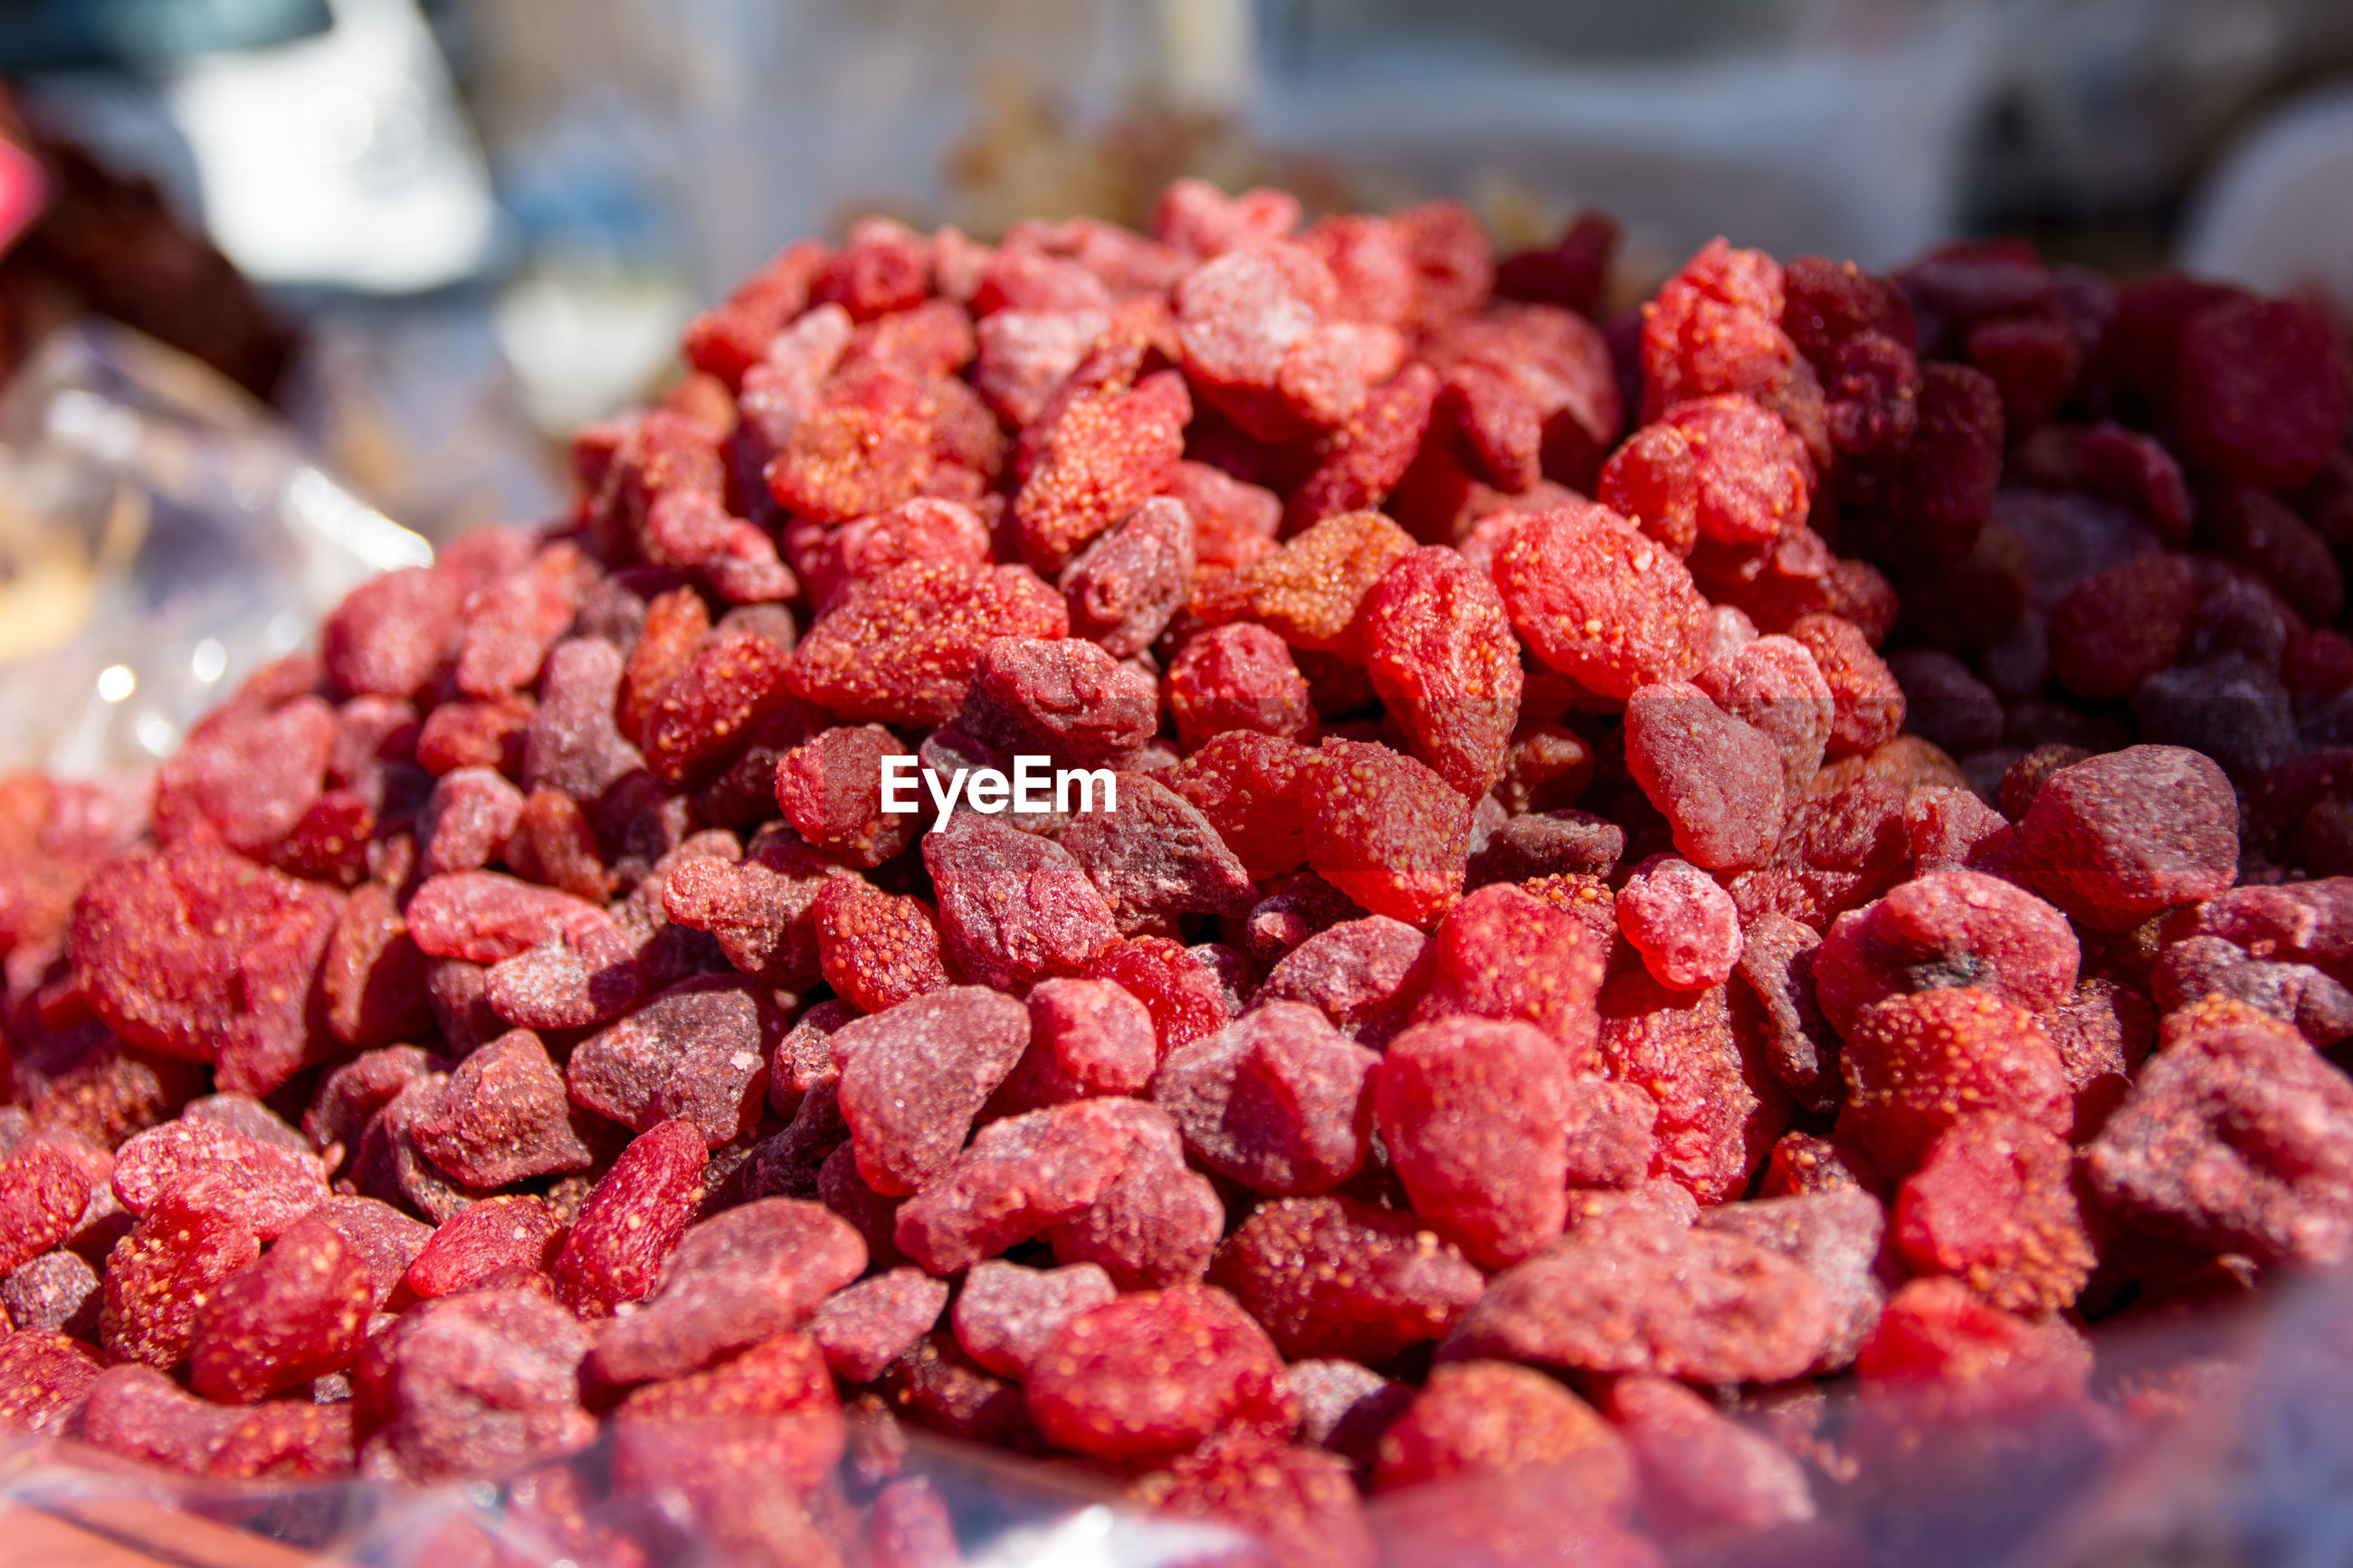 Close-up of dried strawberries for sale at market stall